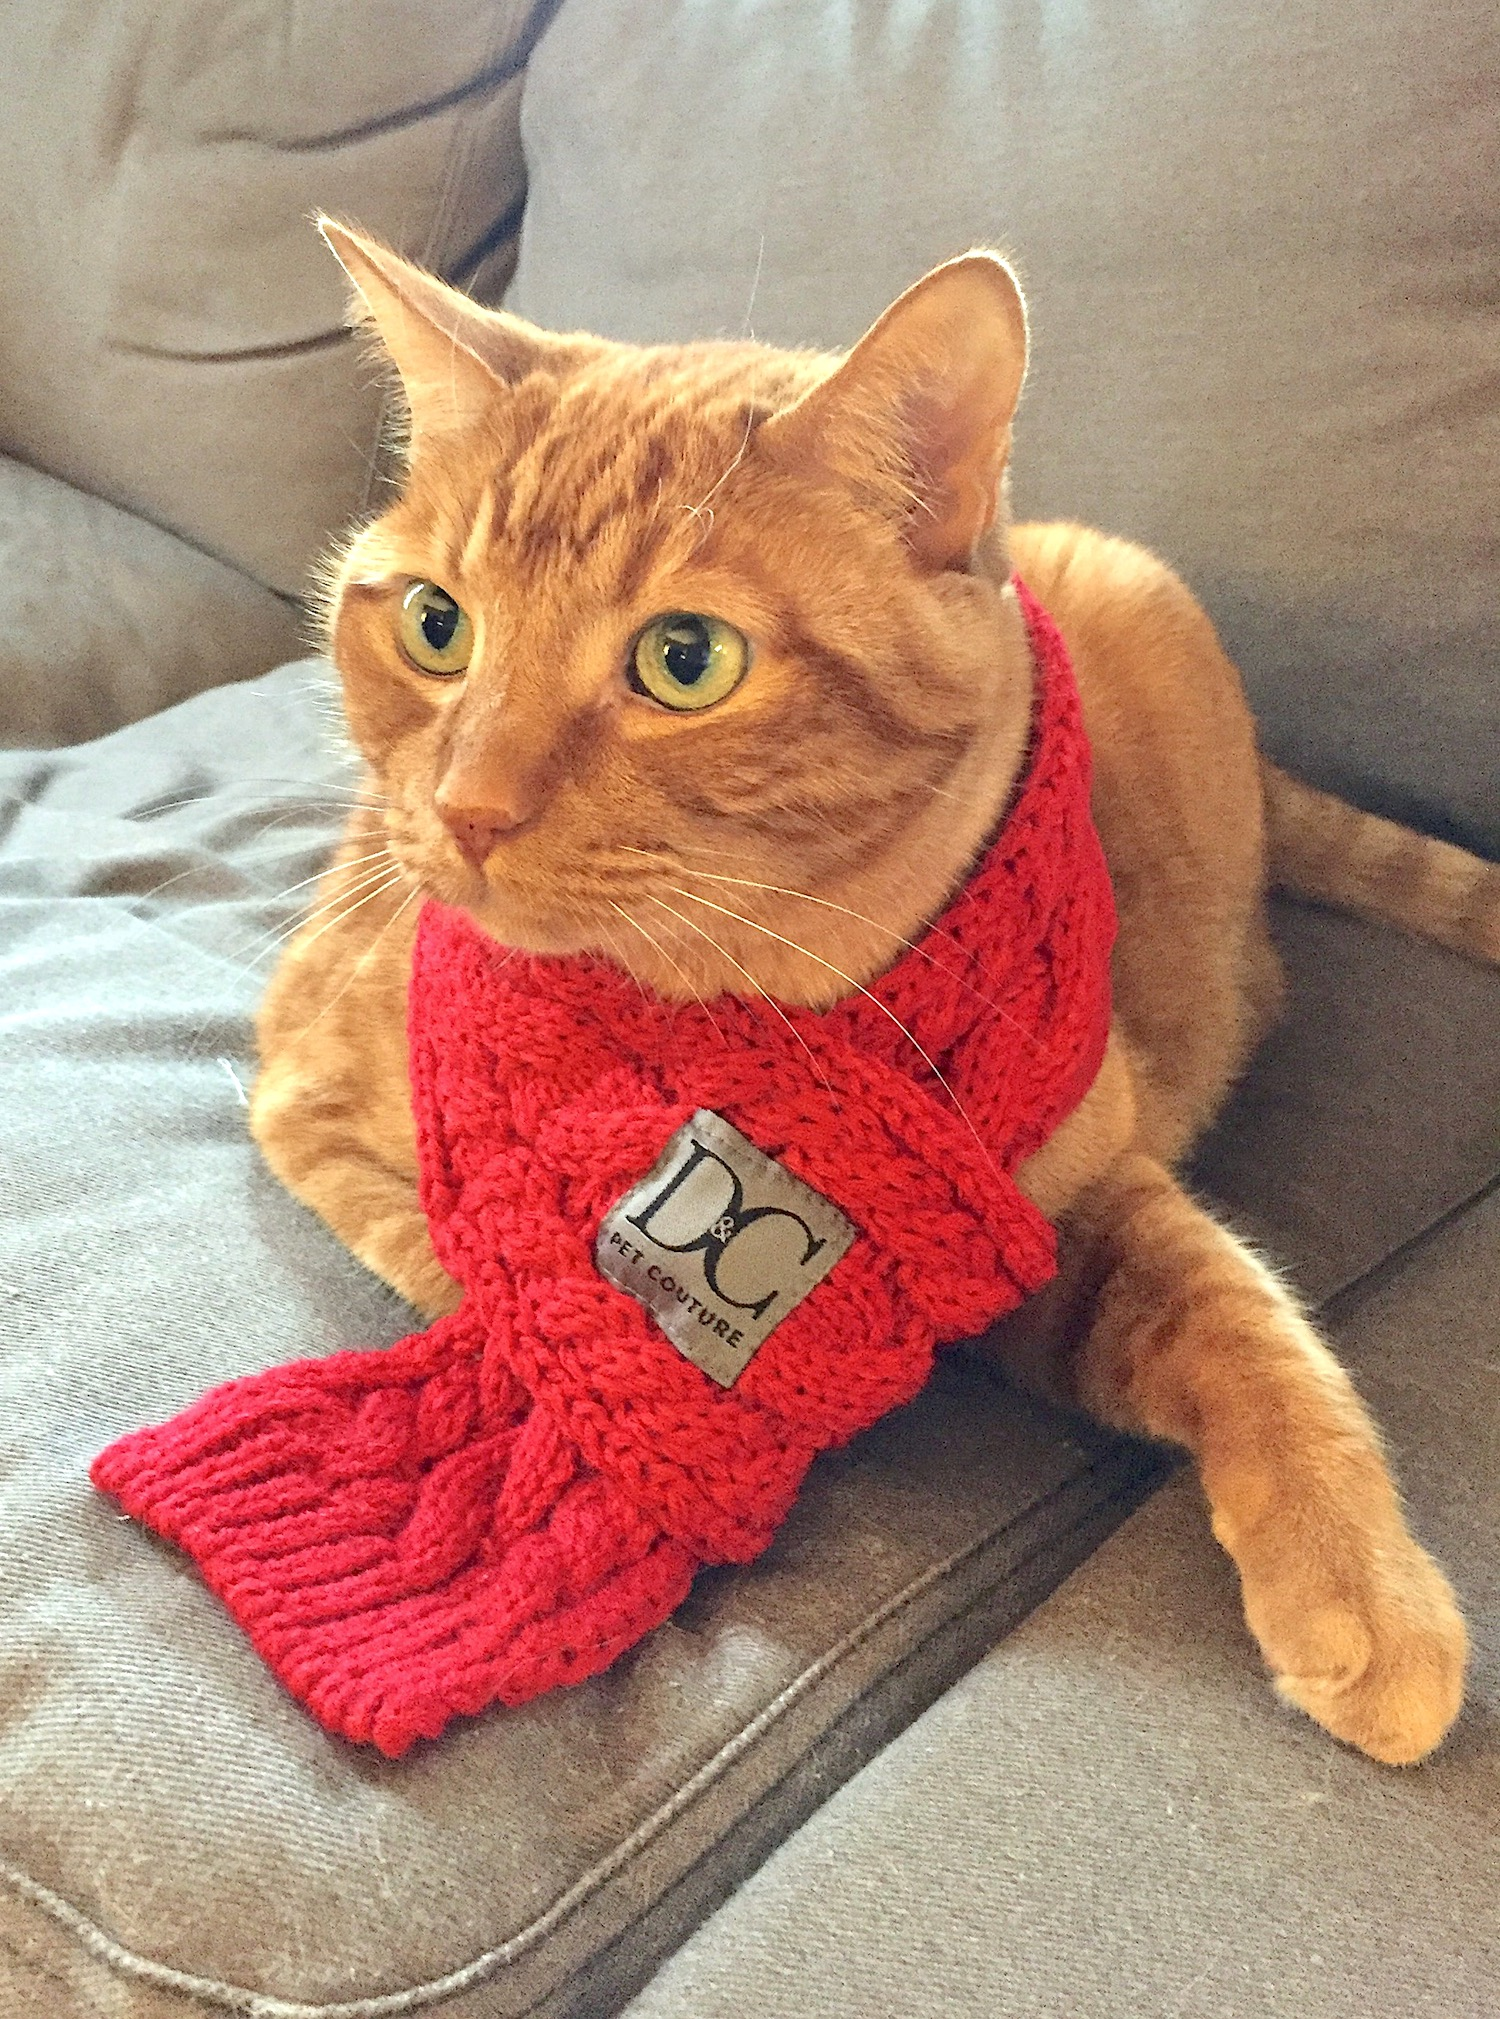 d_c_bella_red_gingercat.JPG